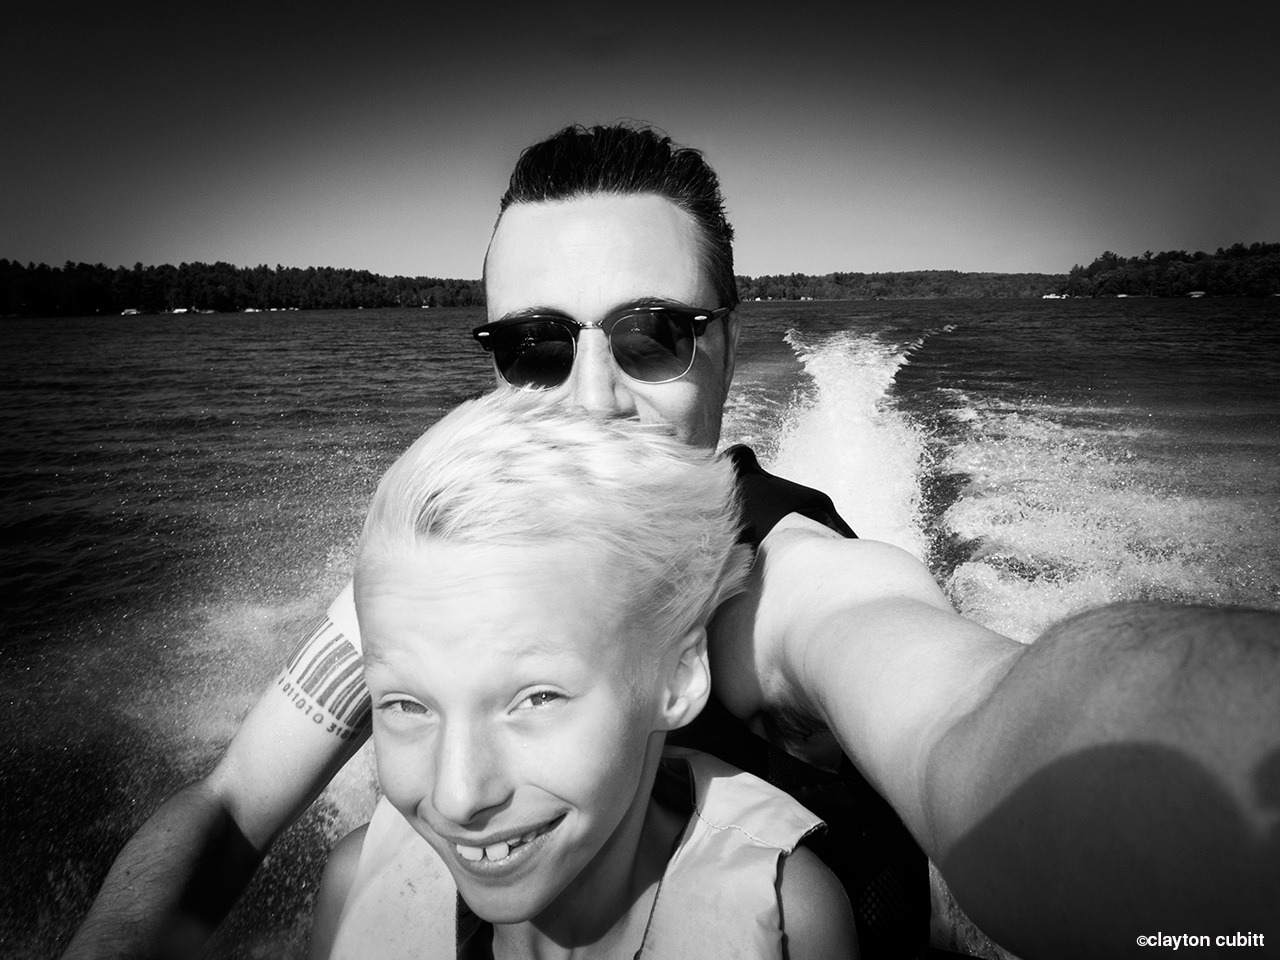 Going fast on the jet ski with Max, Minnesota  (3082)